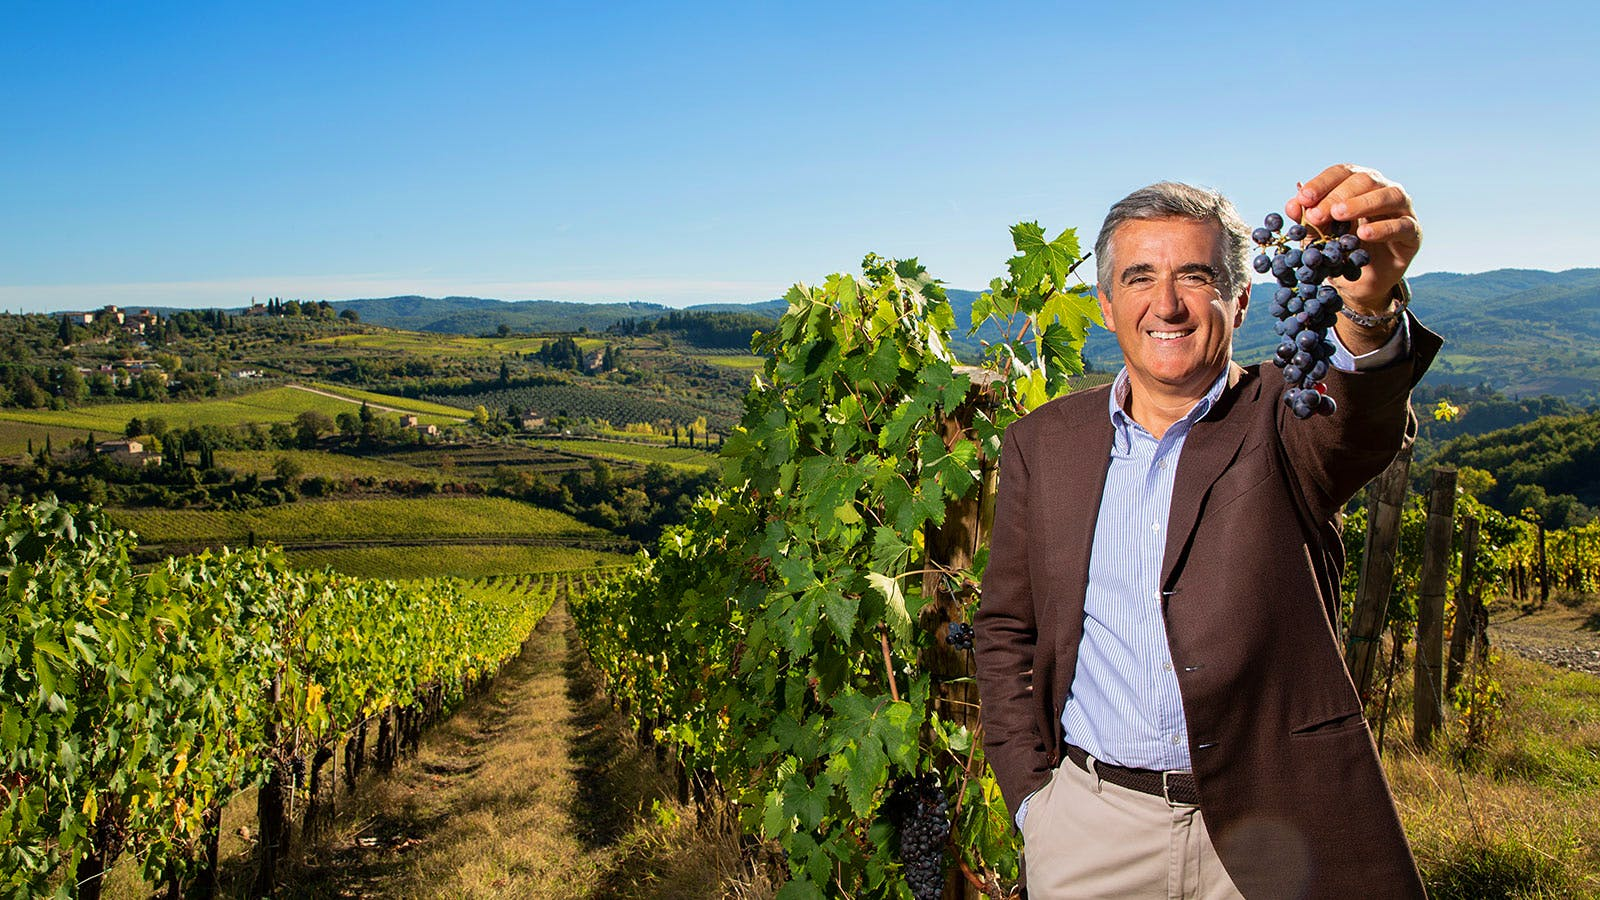 Changes Afoot in Chianti Classico